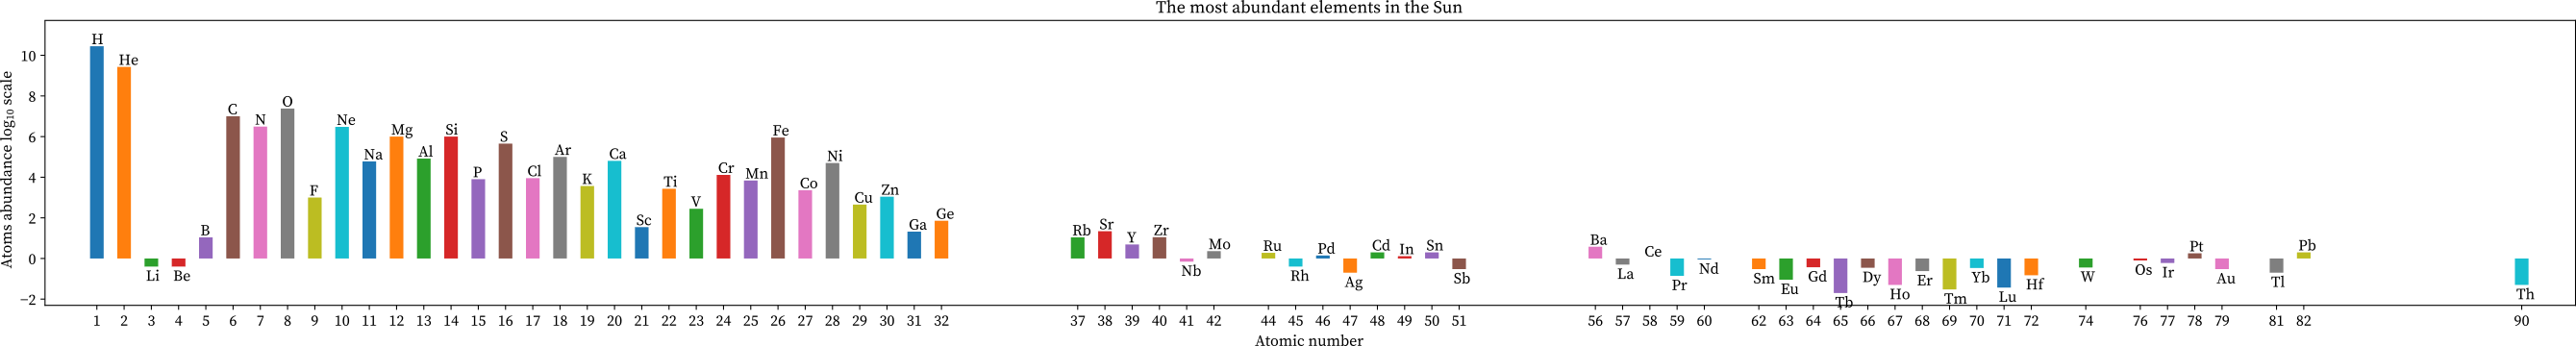 The most abundance of elements in the sun